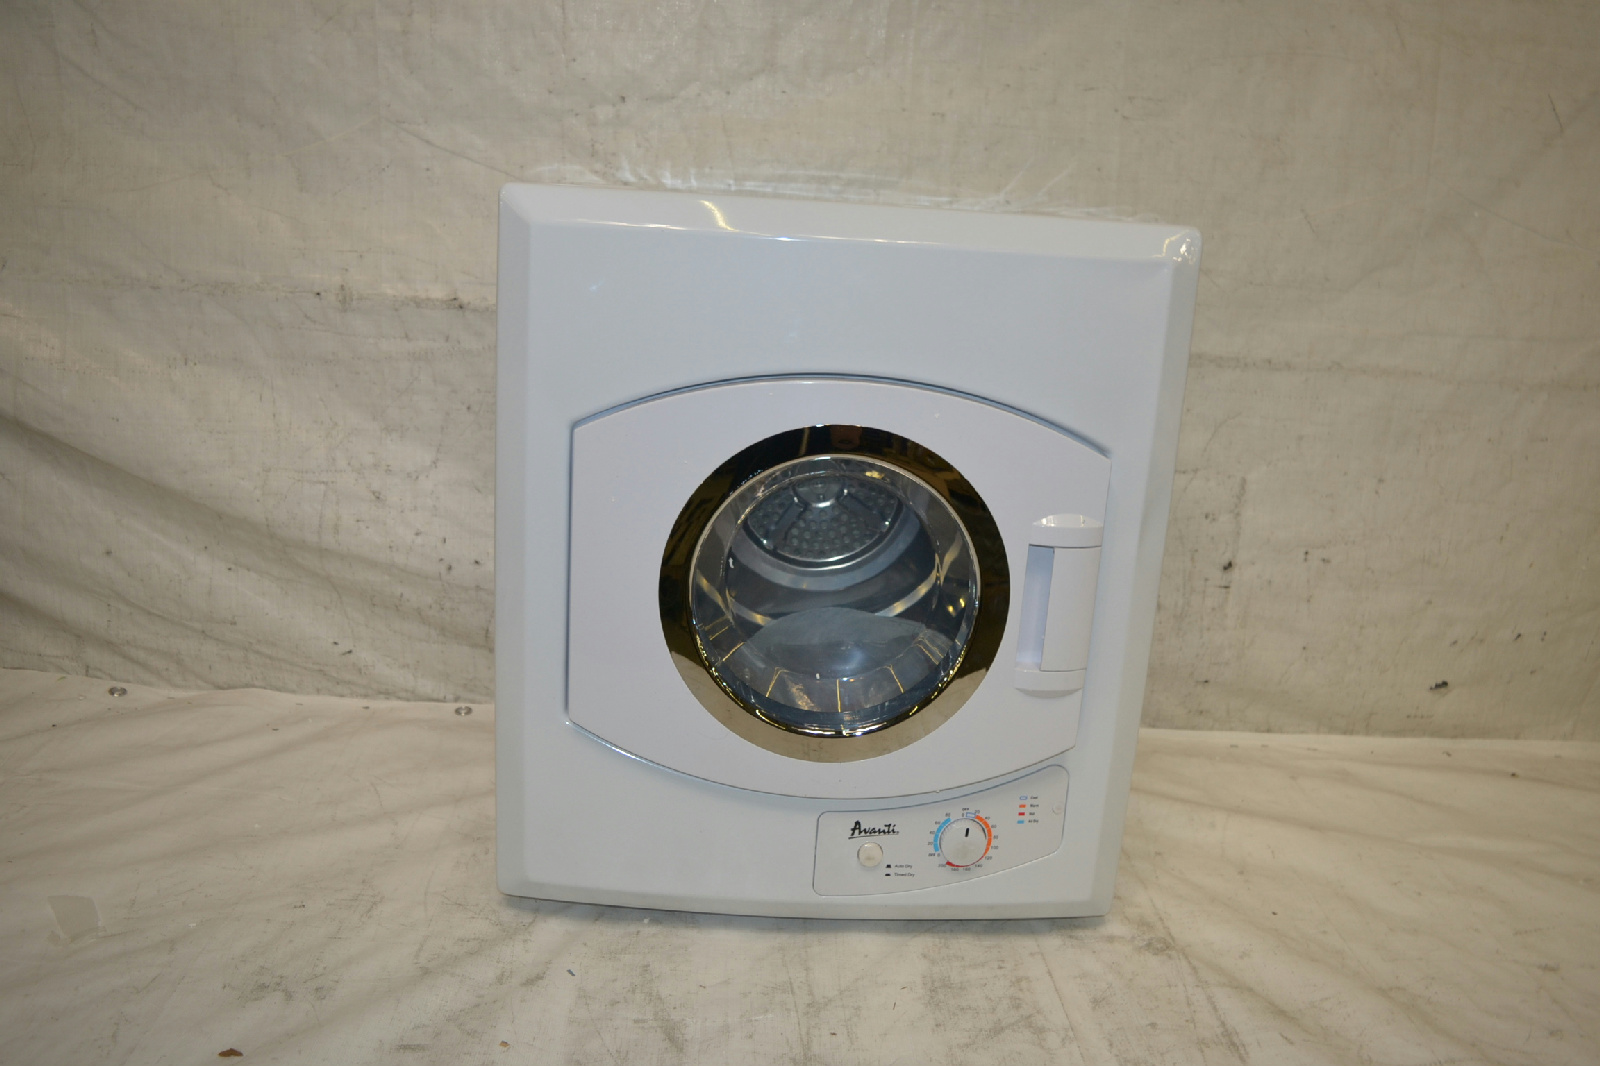 electrolux iron aid dryer manual